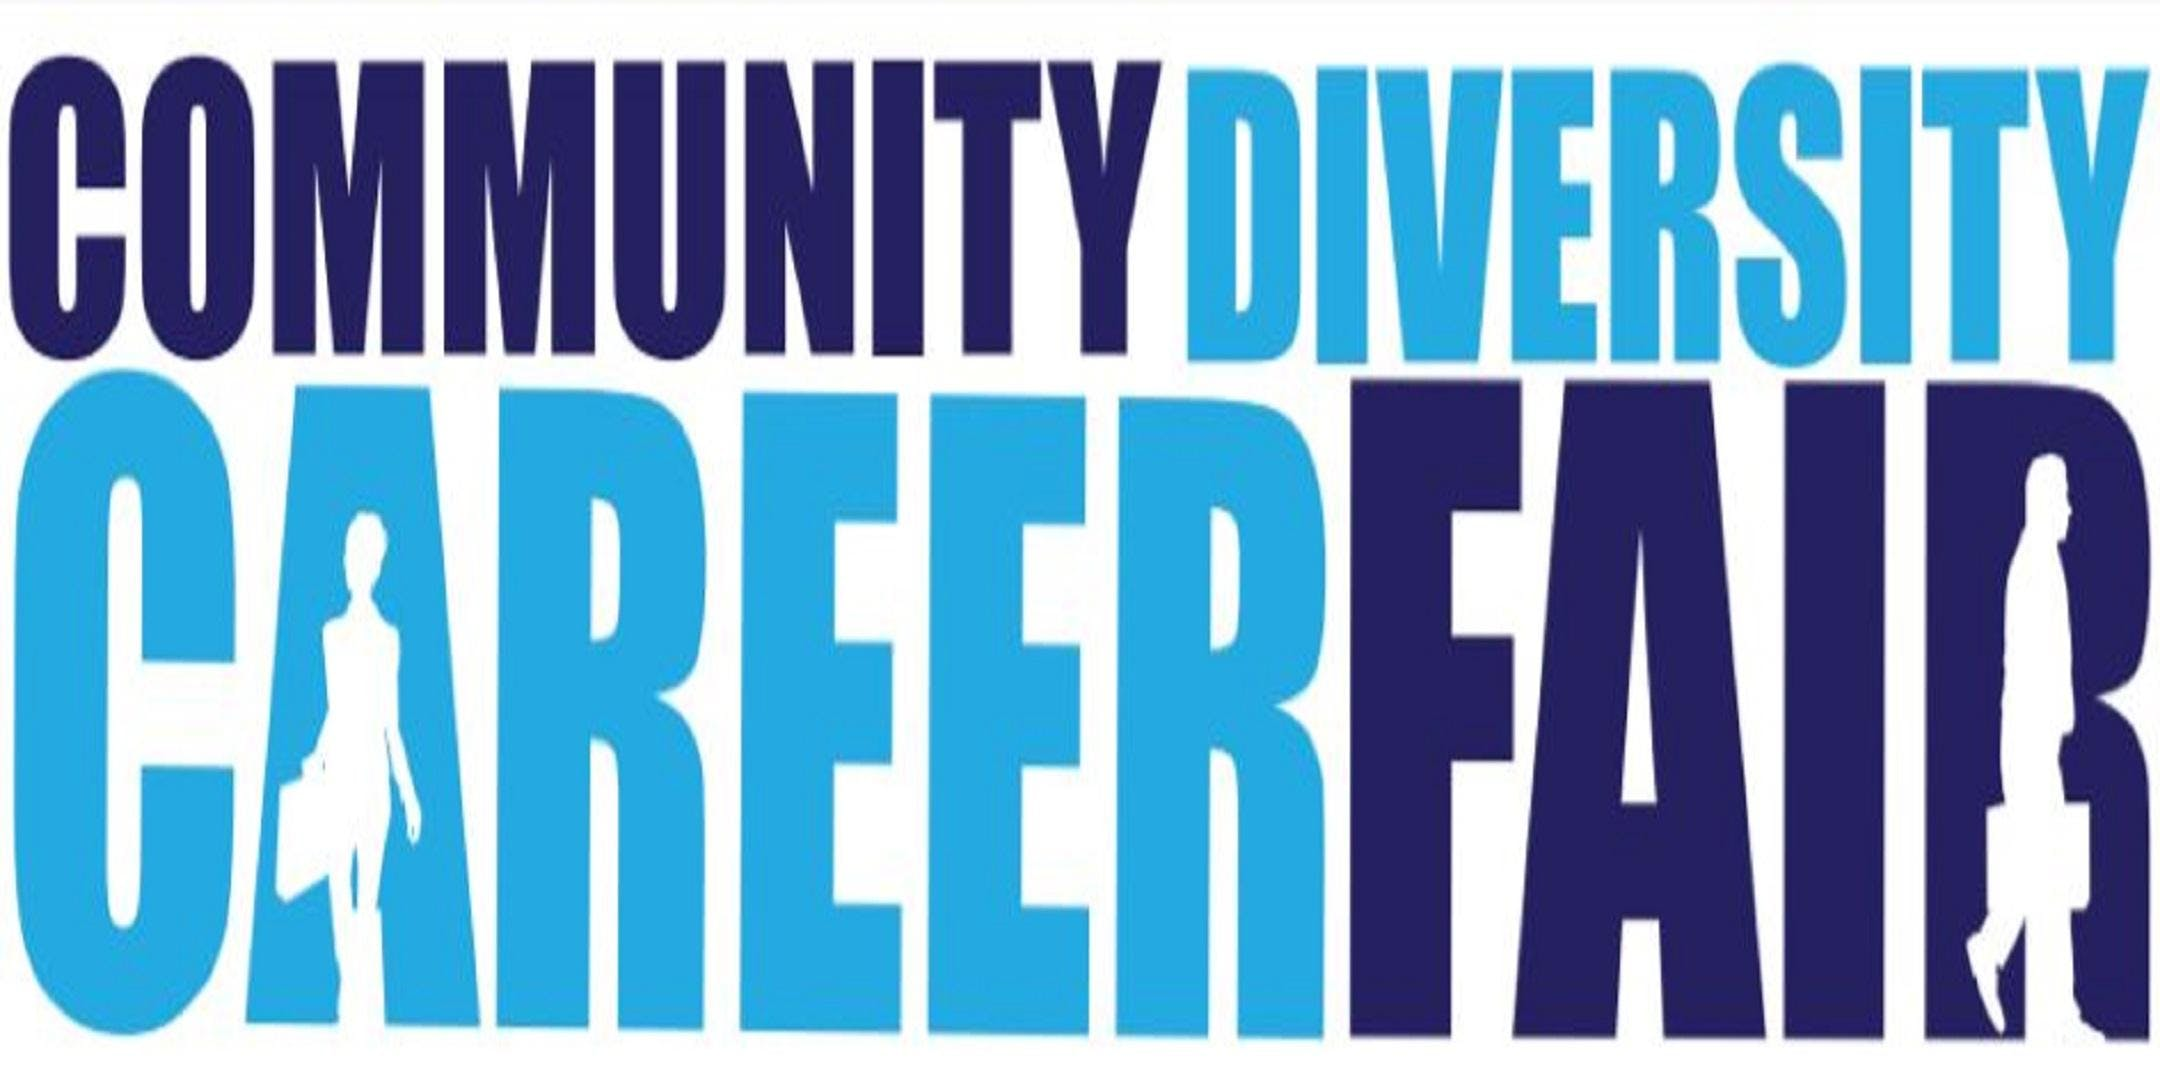 Community Diversity Career Fair | Meet with 20+ Diverse Hiring Companies | March 30, 2019